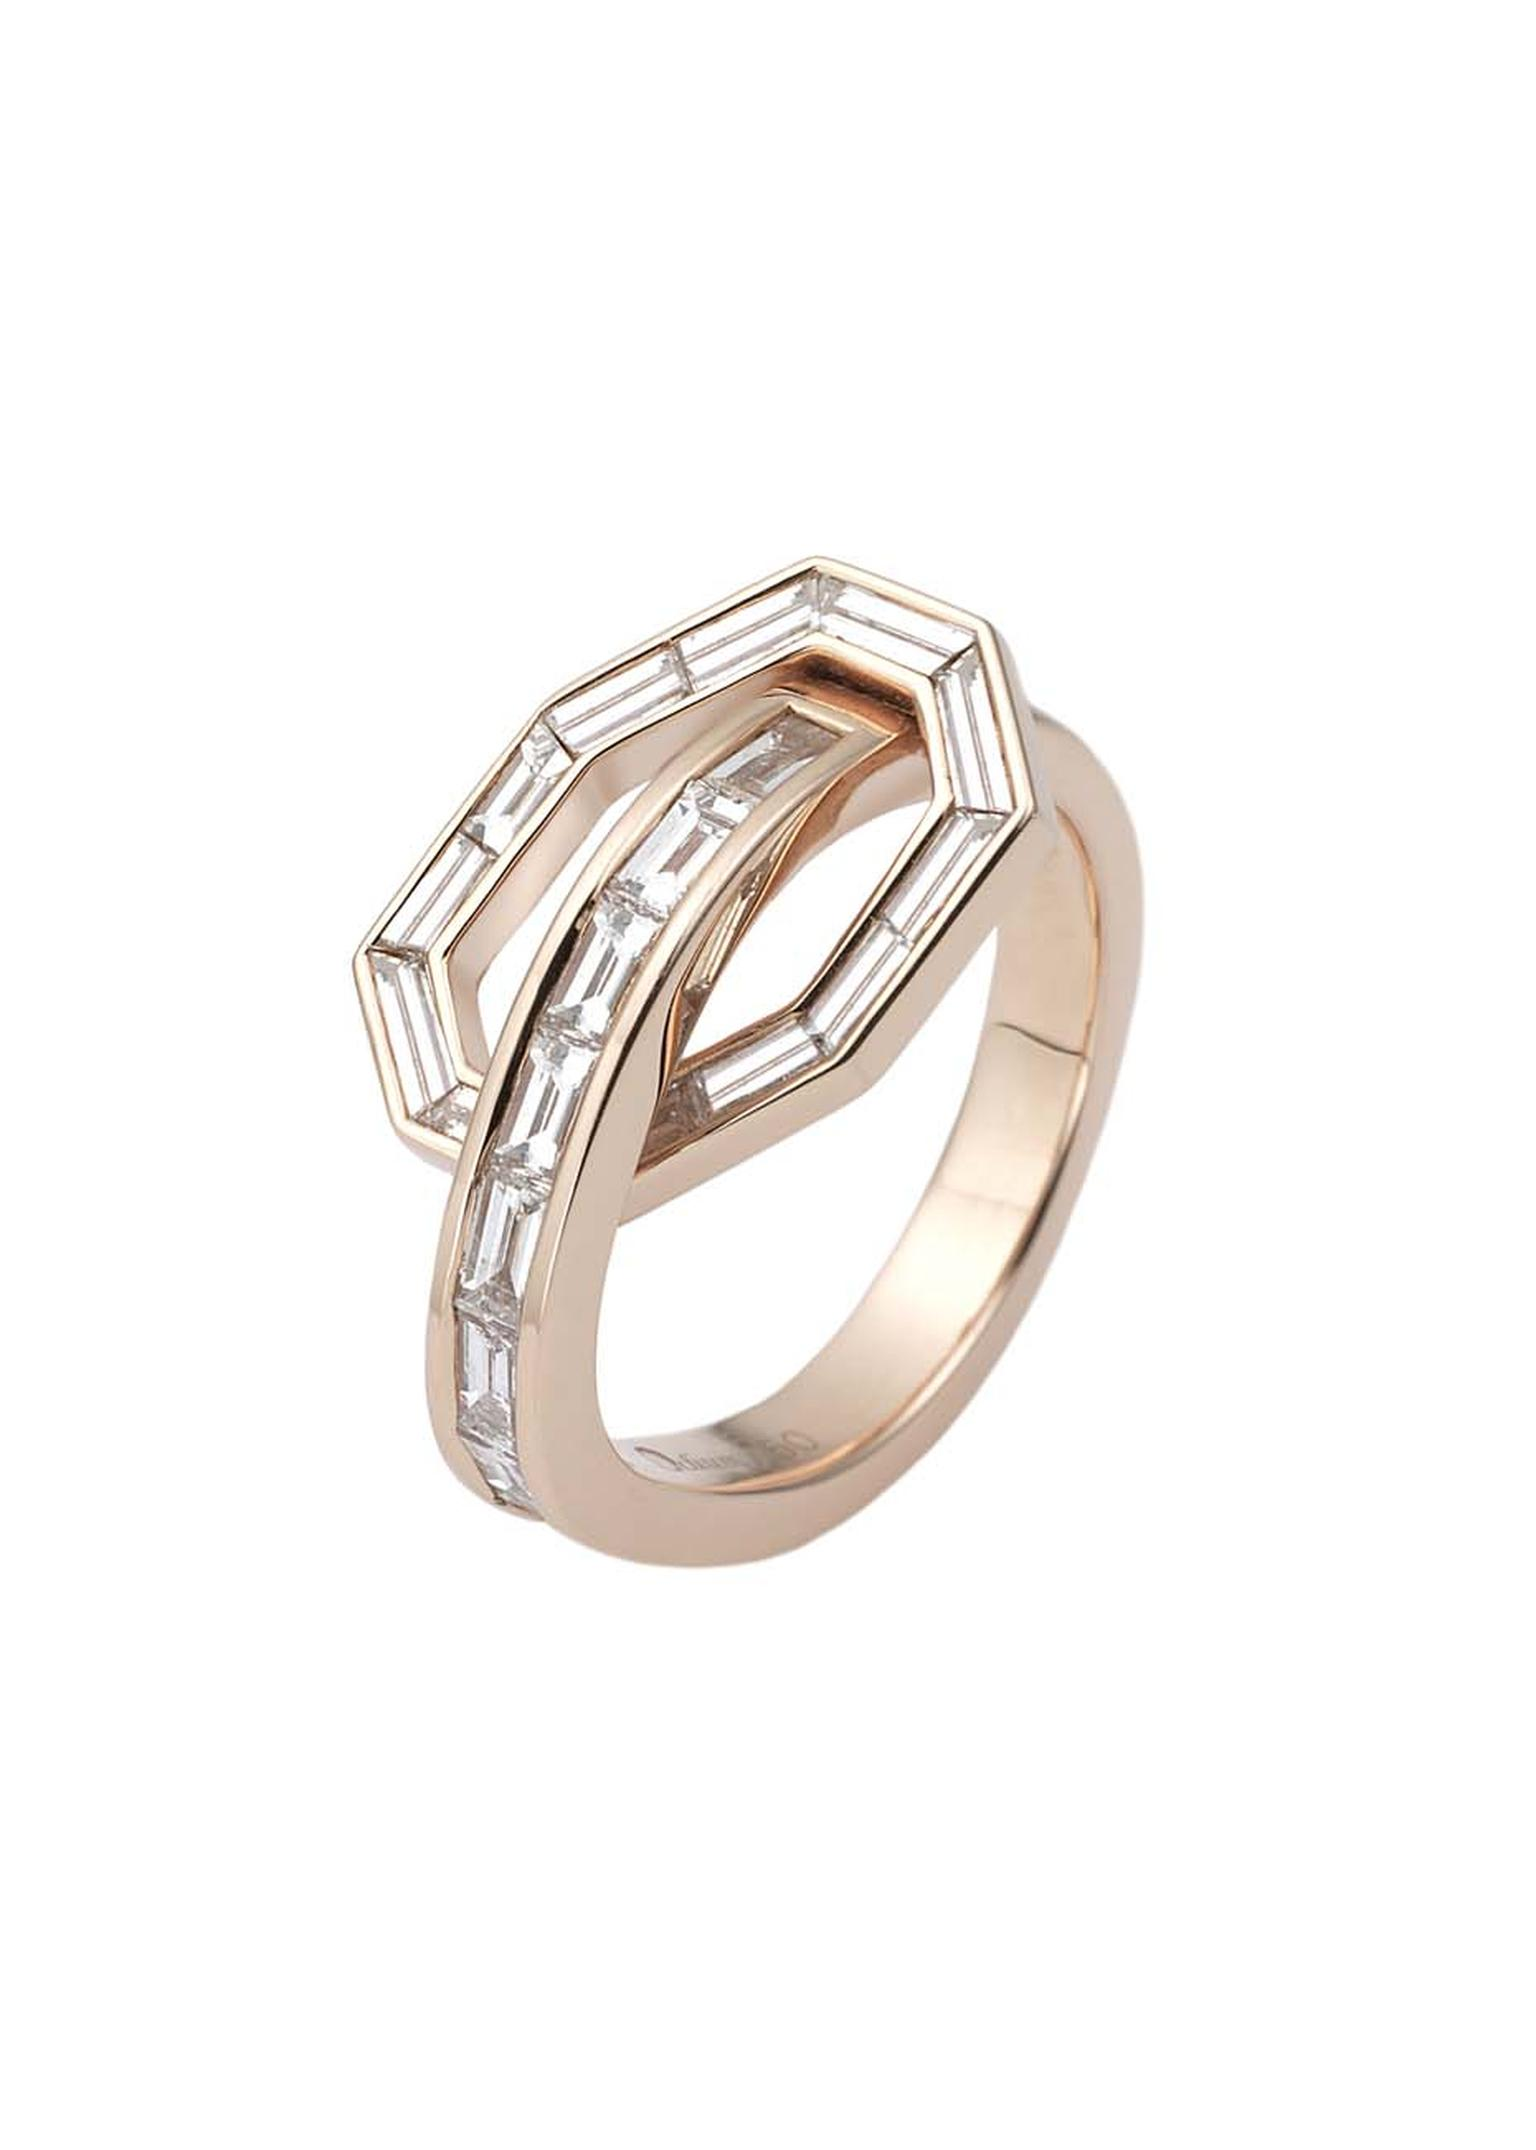 Octium rose gold ring with baguette-cut diamonds.